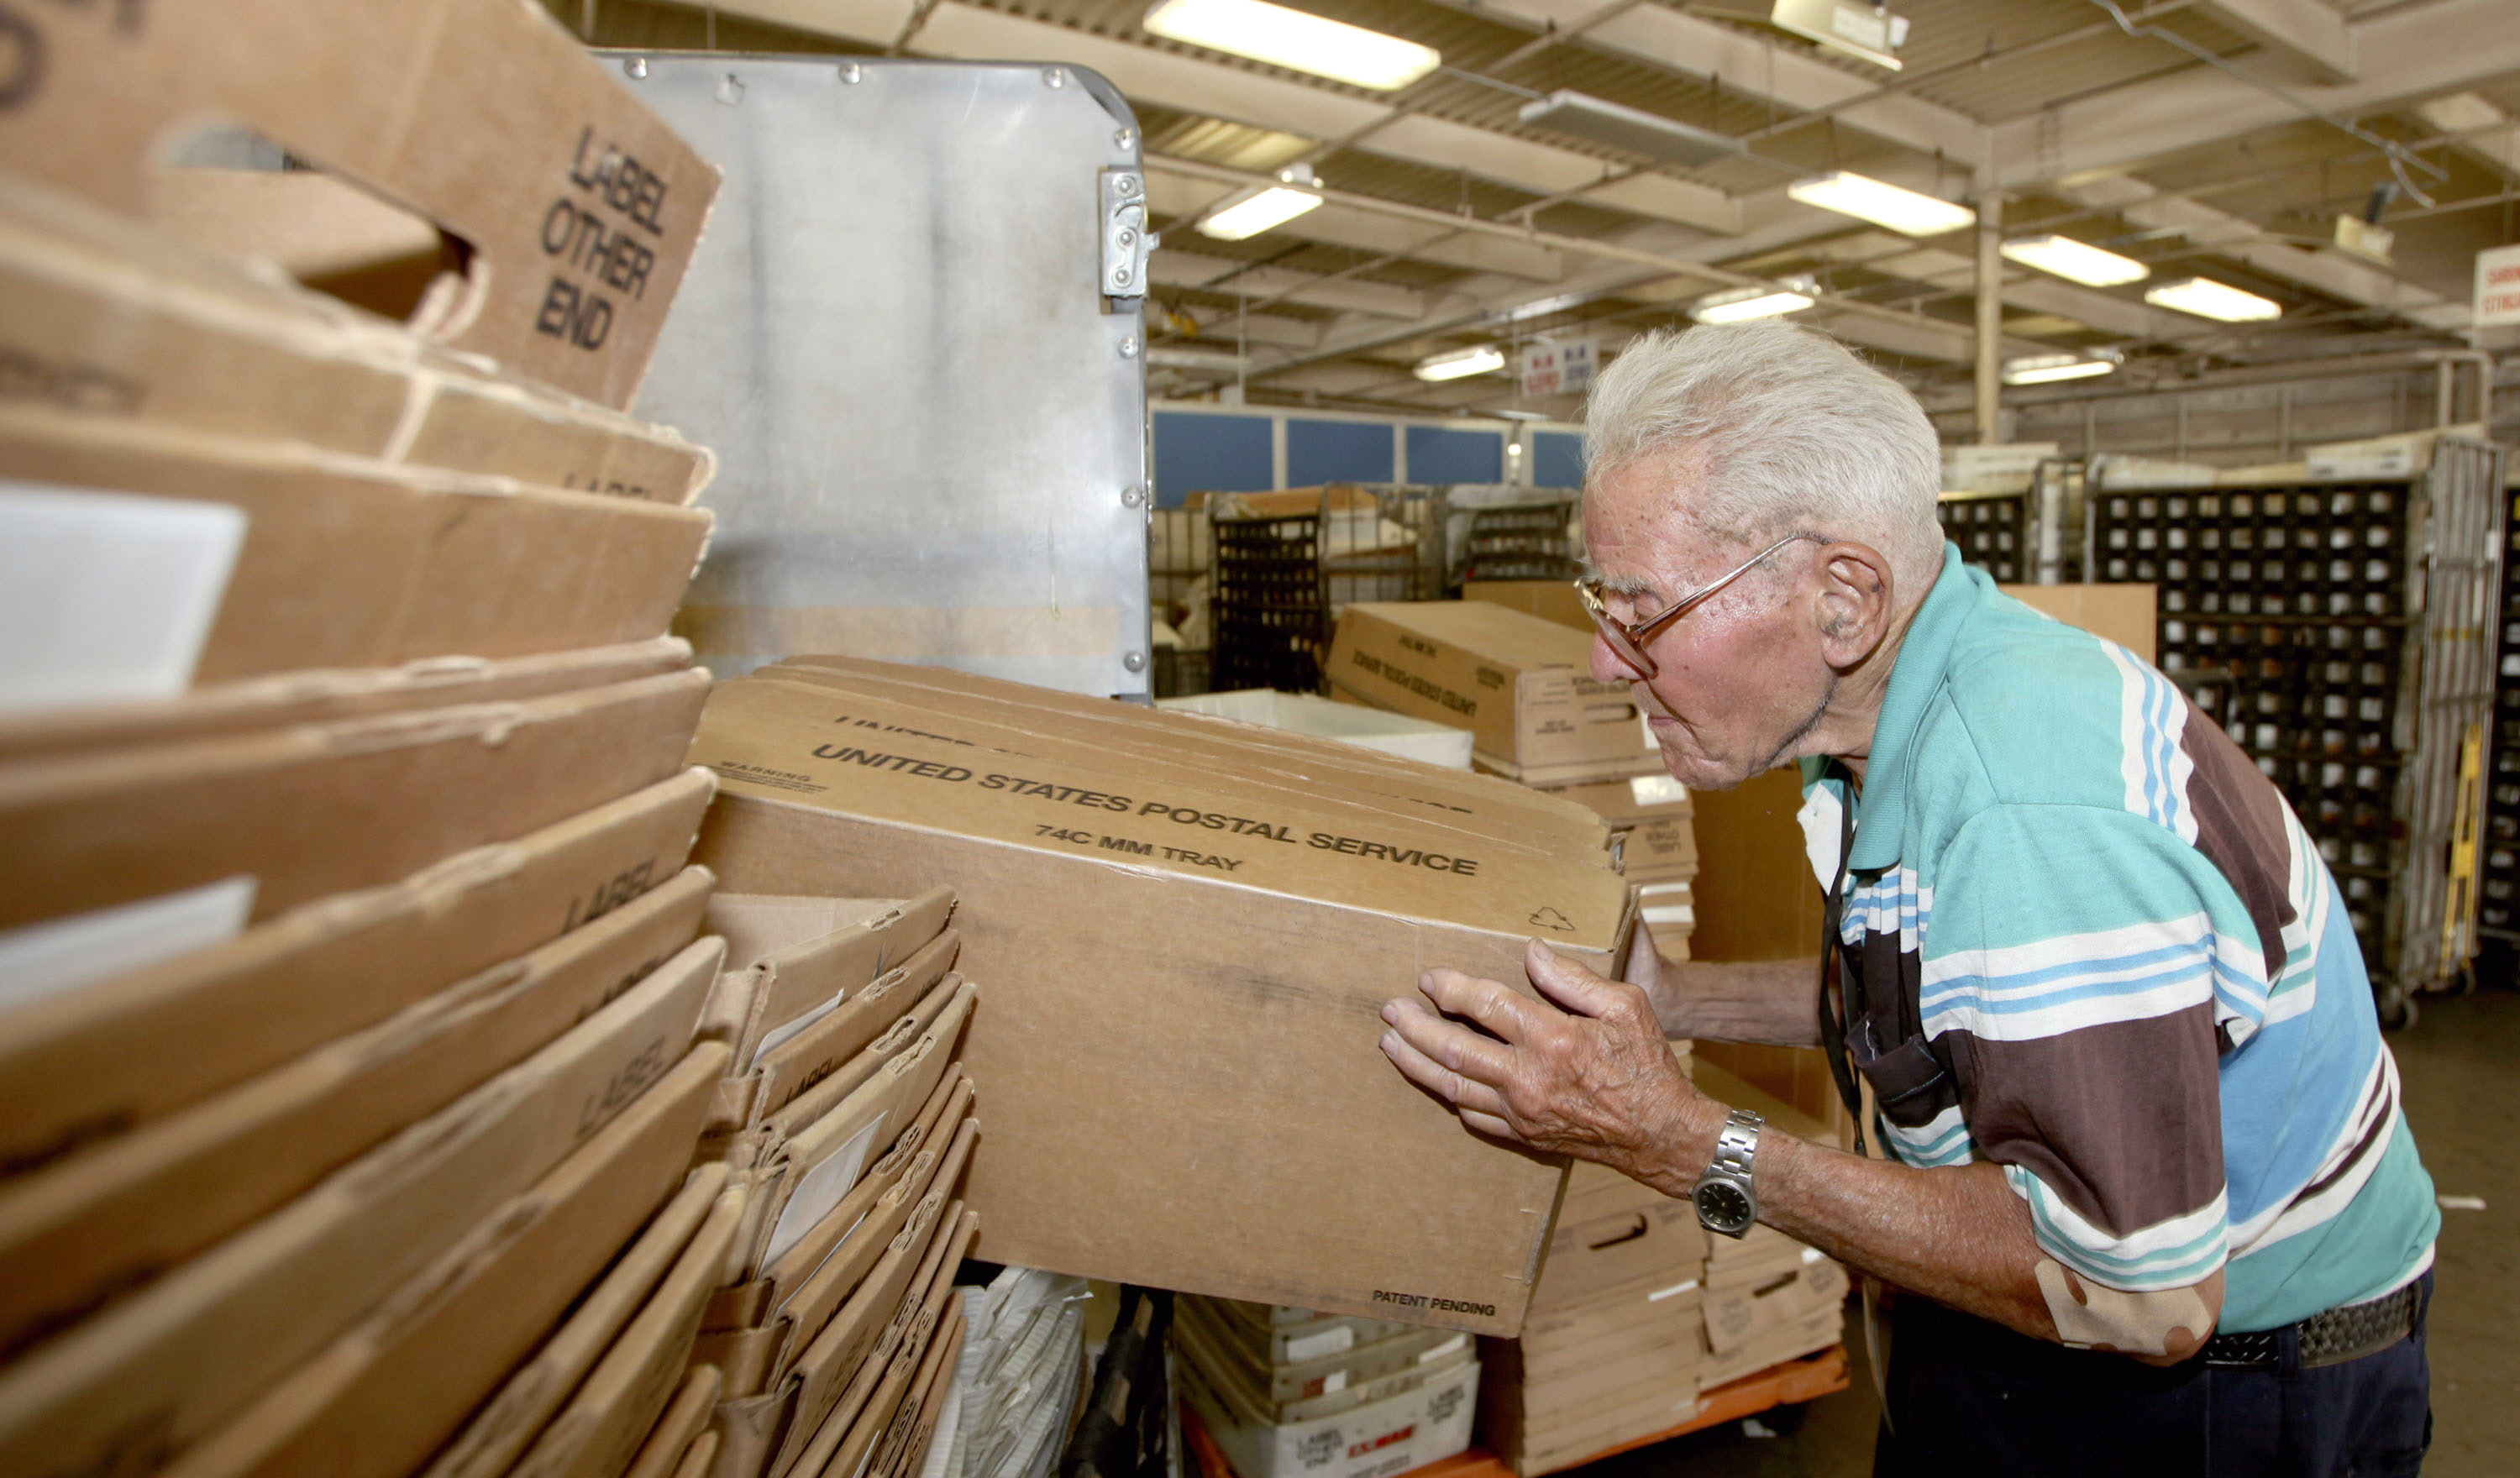 Oldest Postal Worker